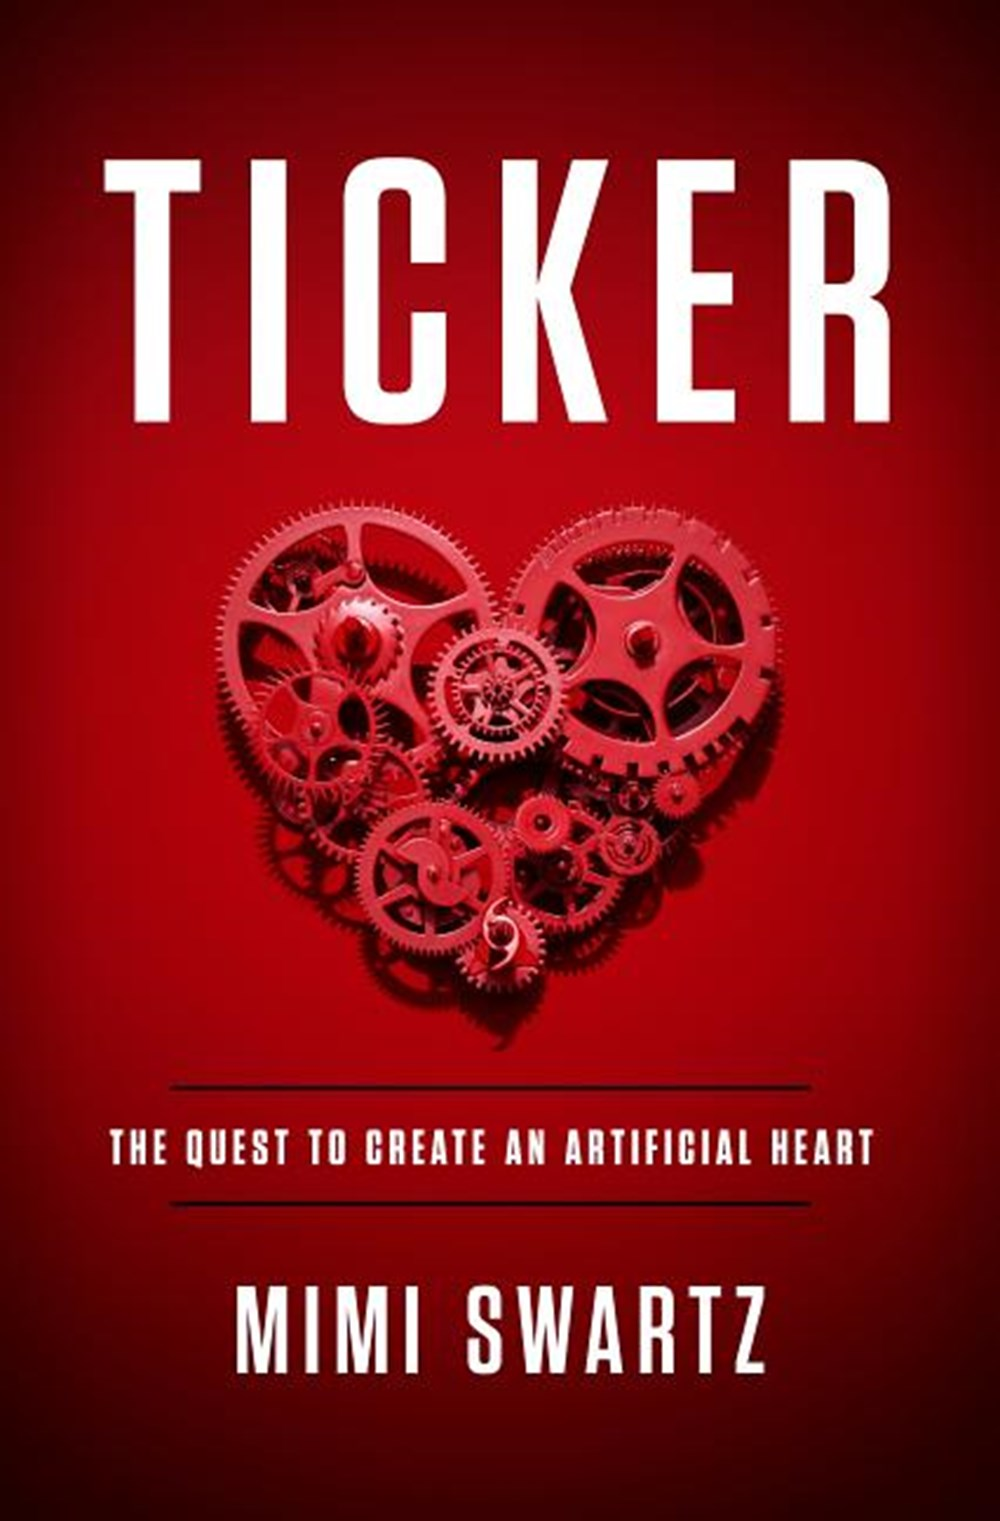 Ticker The Quest to Create an Artificial Heart